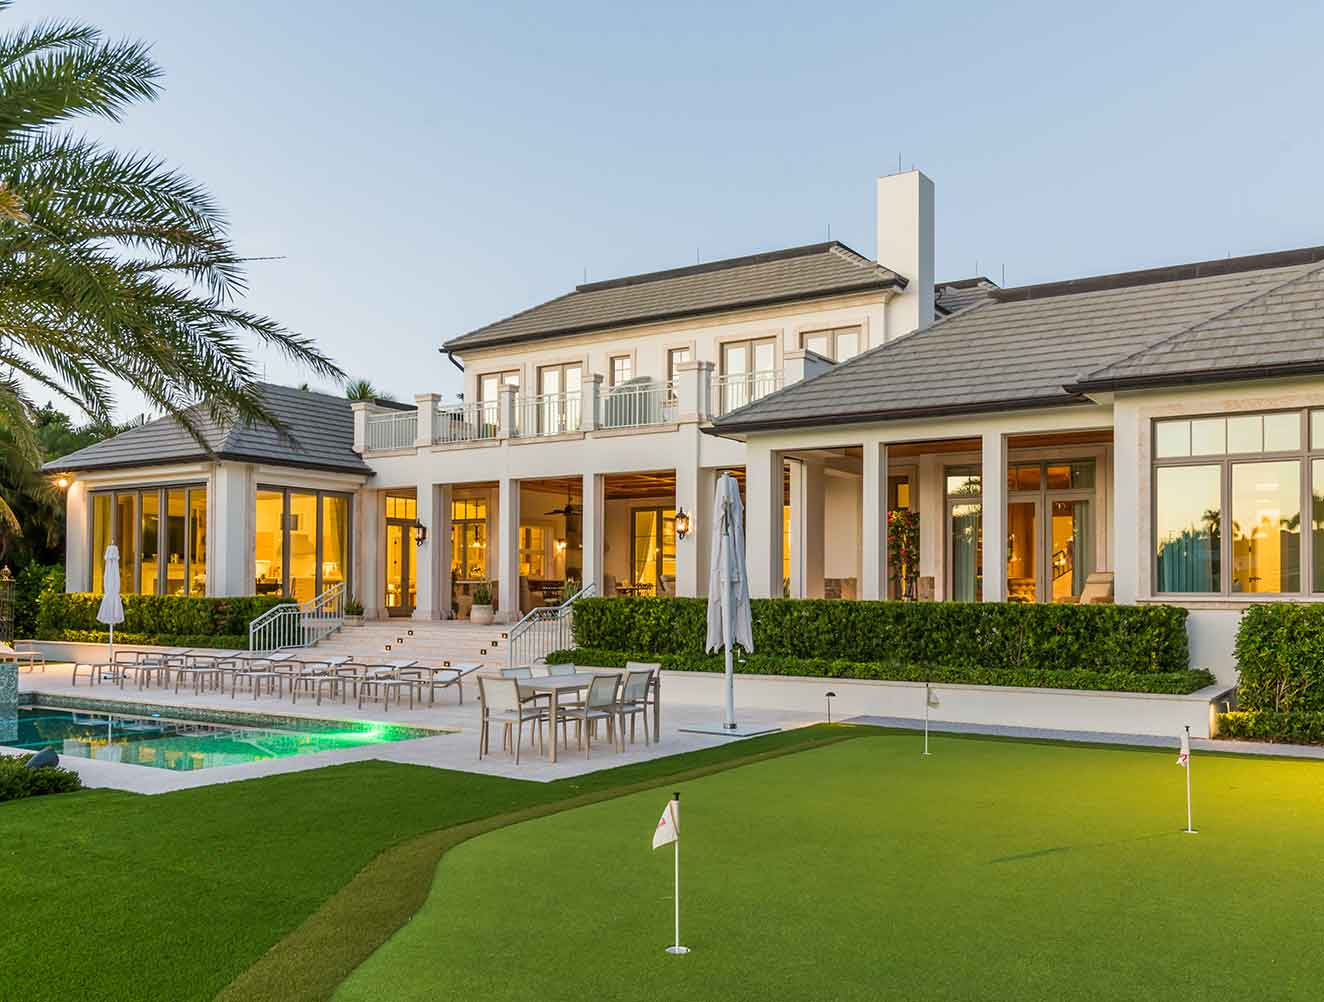 Putting Green at Cove Residence in Naples Florida, single family home designed by Kukk Architecture & Design Naples Architecture Firm